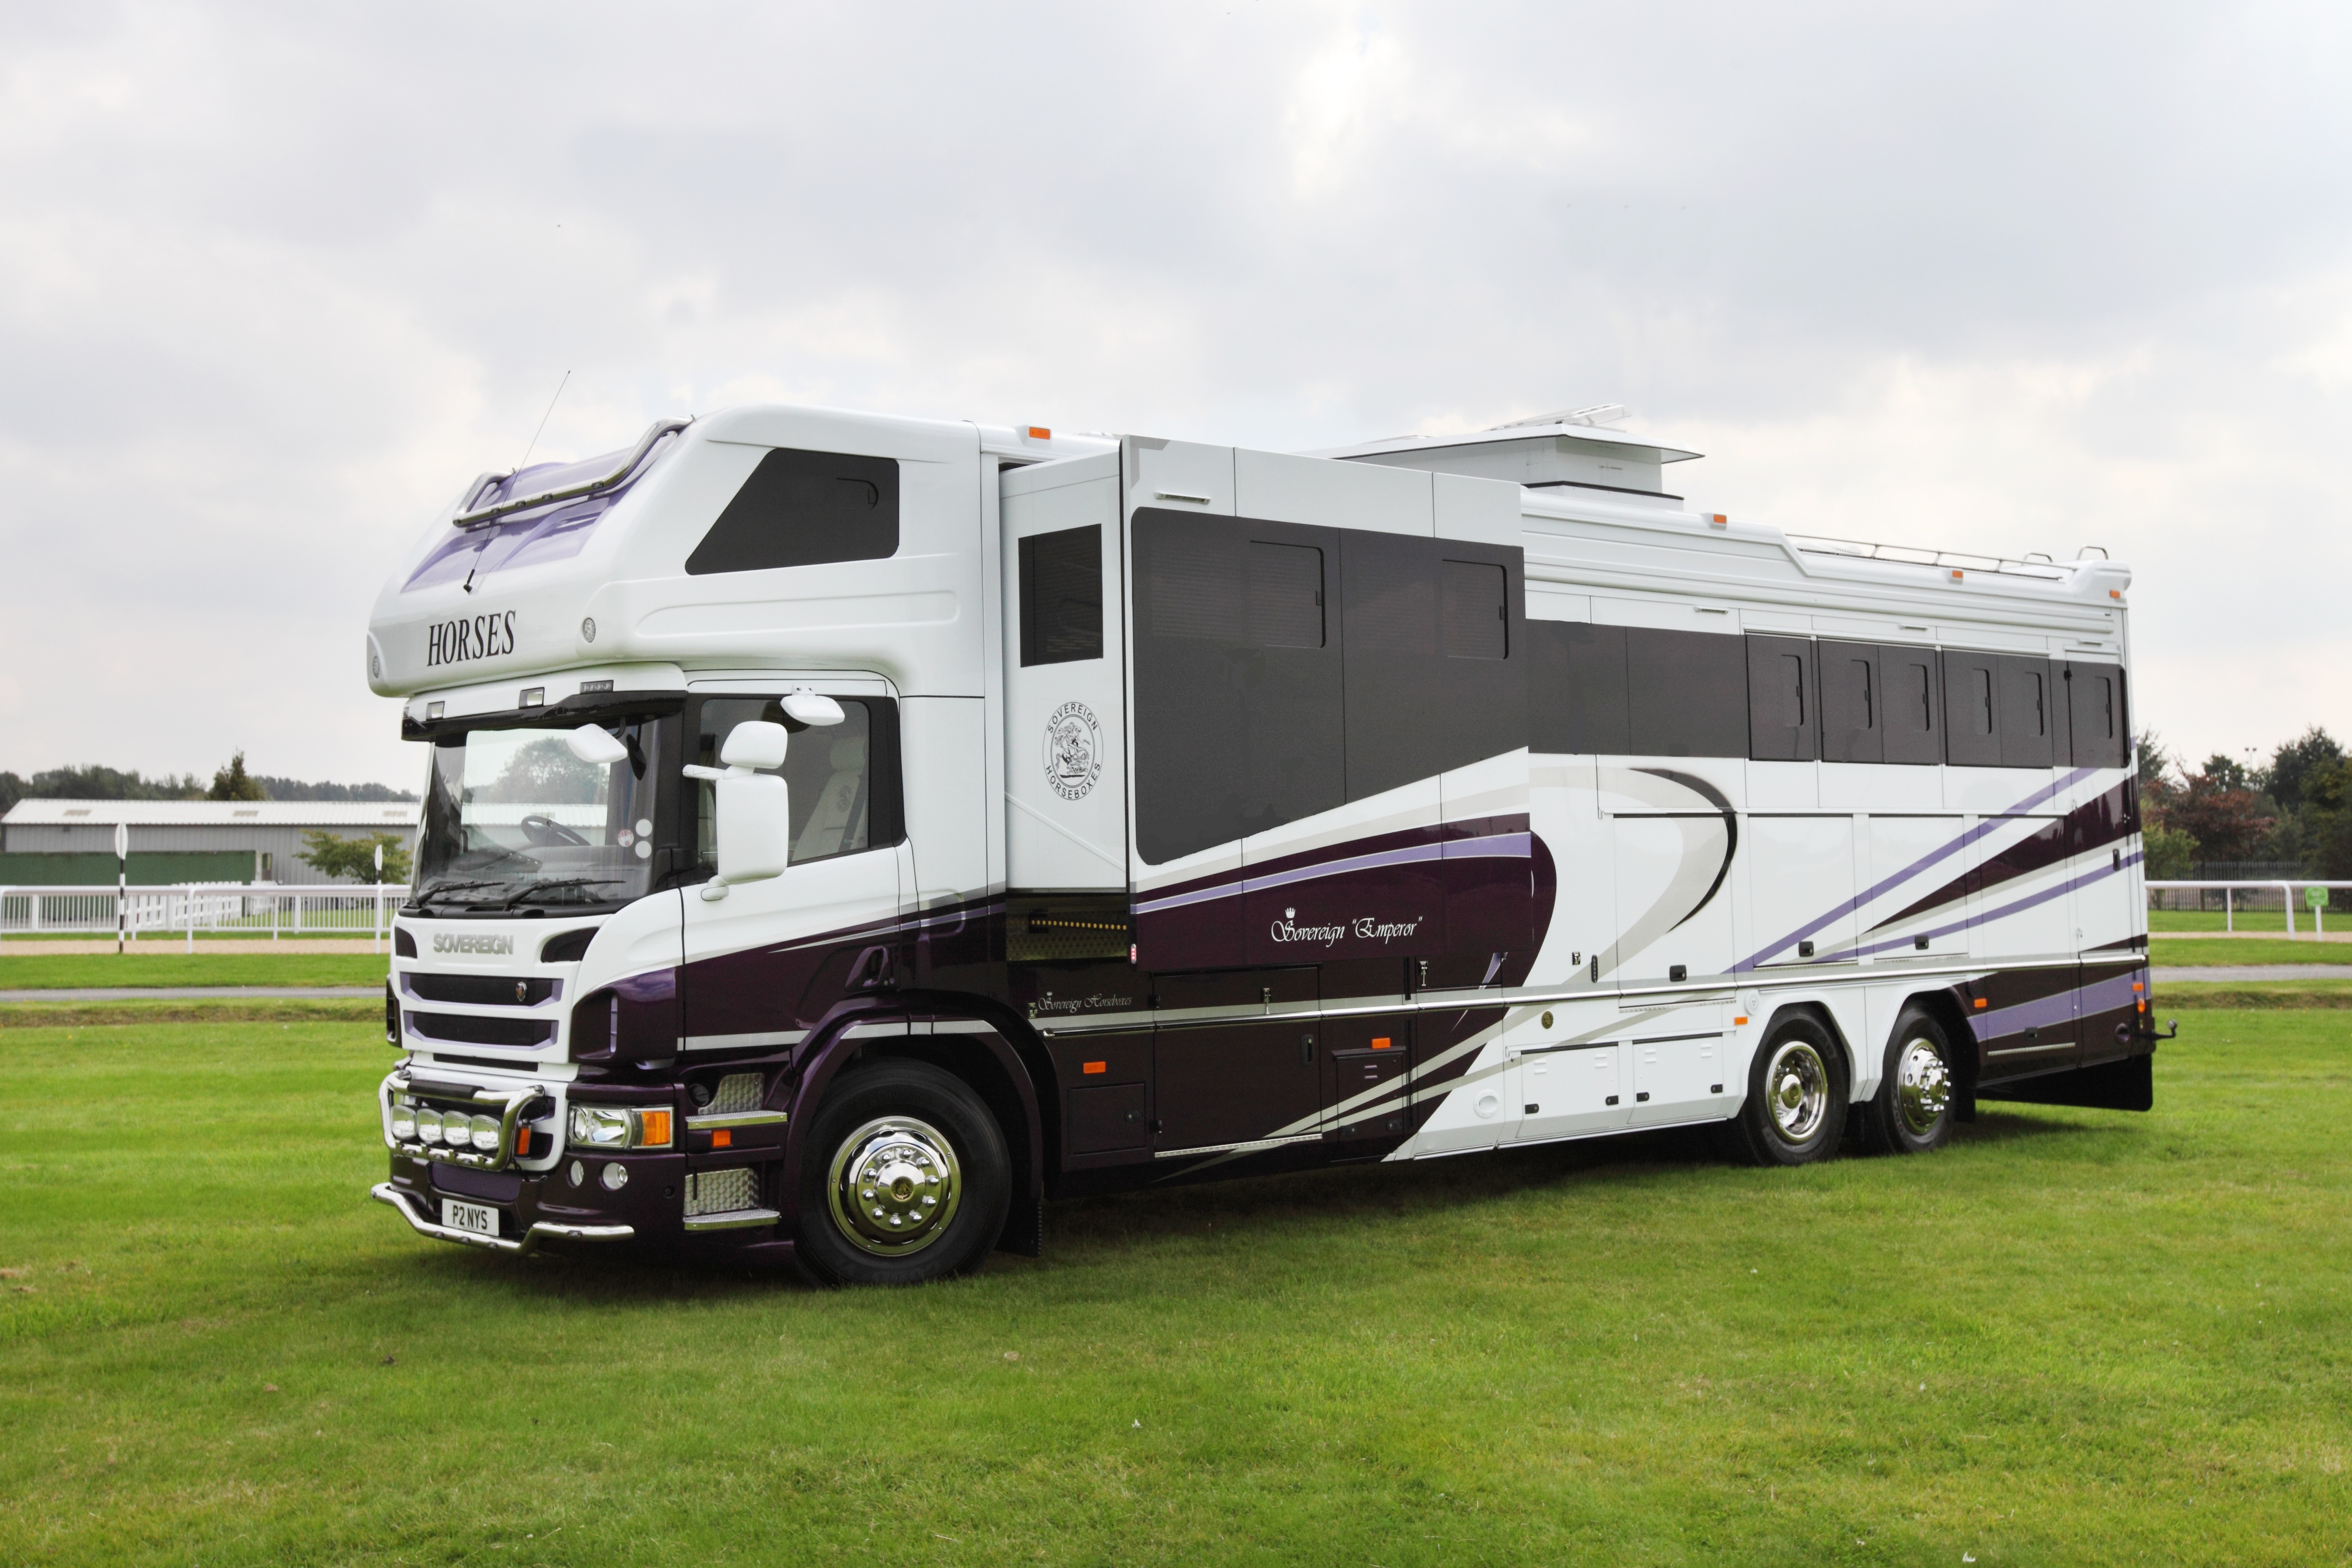 18dcf8815868de The Emperor from Sovereign Horseboxes has the option of multiple slide-outs  on both sides of the living